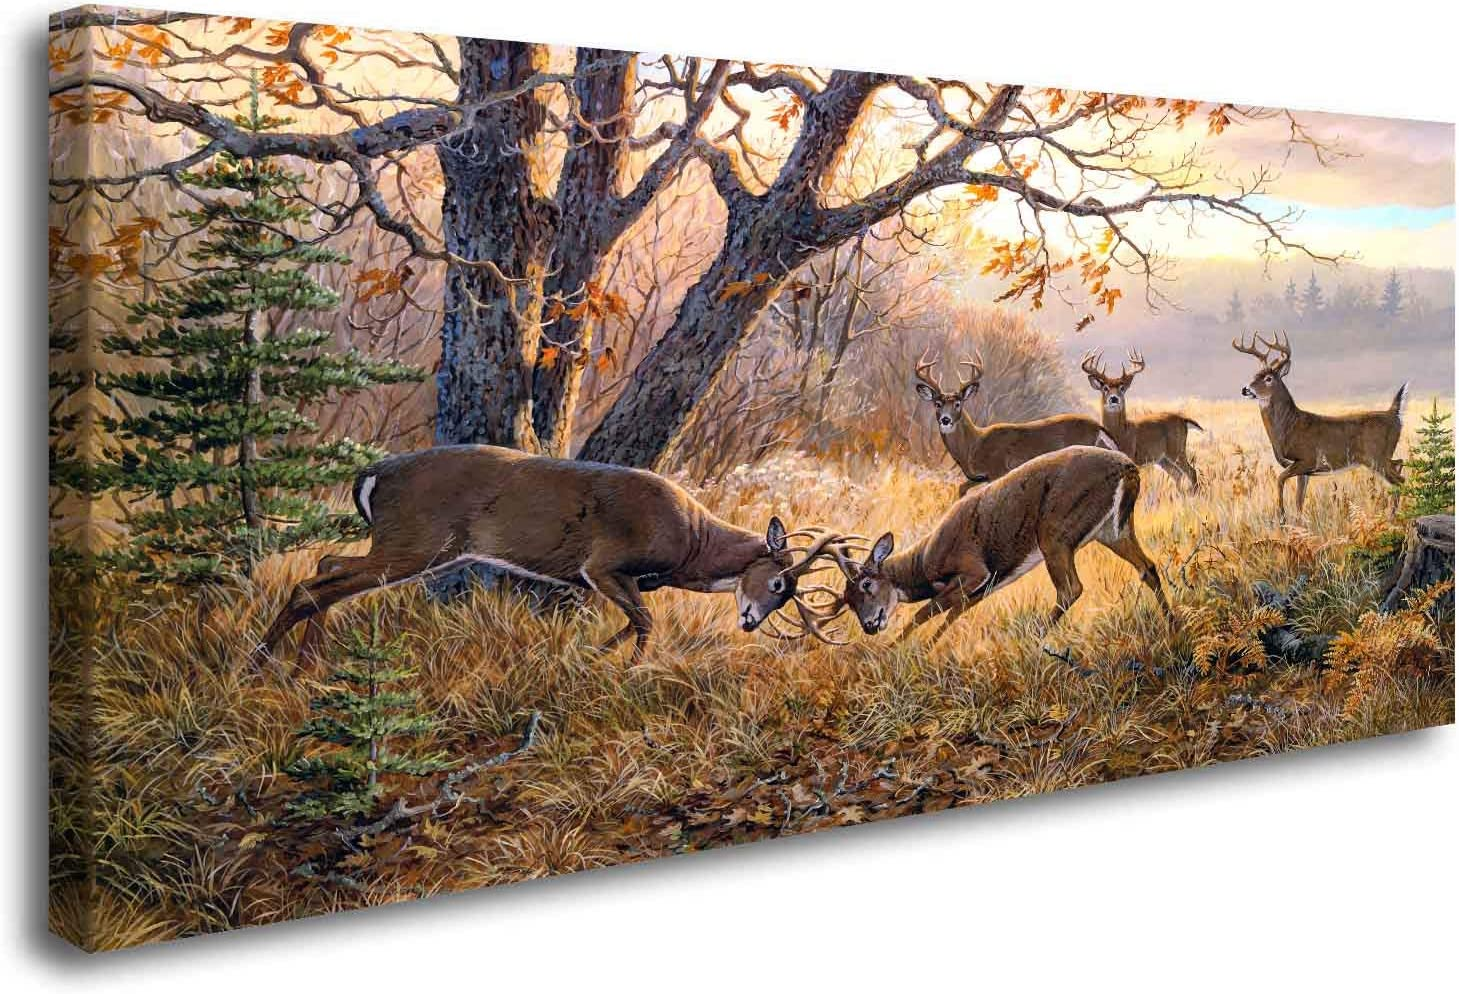 ArtHome520 Yellow Animal Deer Canvas Print Painting Wall Art Golden Autumn Landscape Picture Home Decor Living Dining Room Modern Framed Panel Piece (20''x40'')